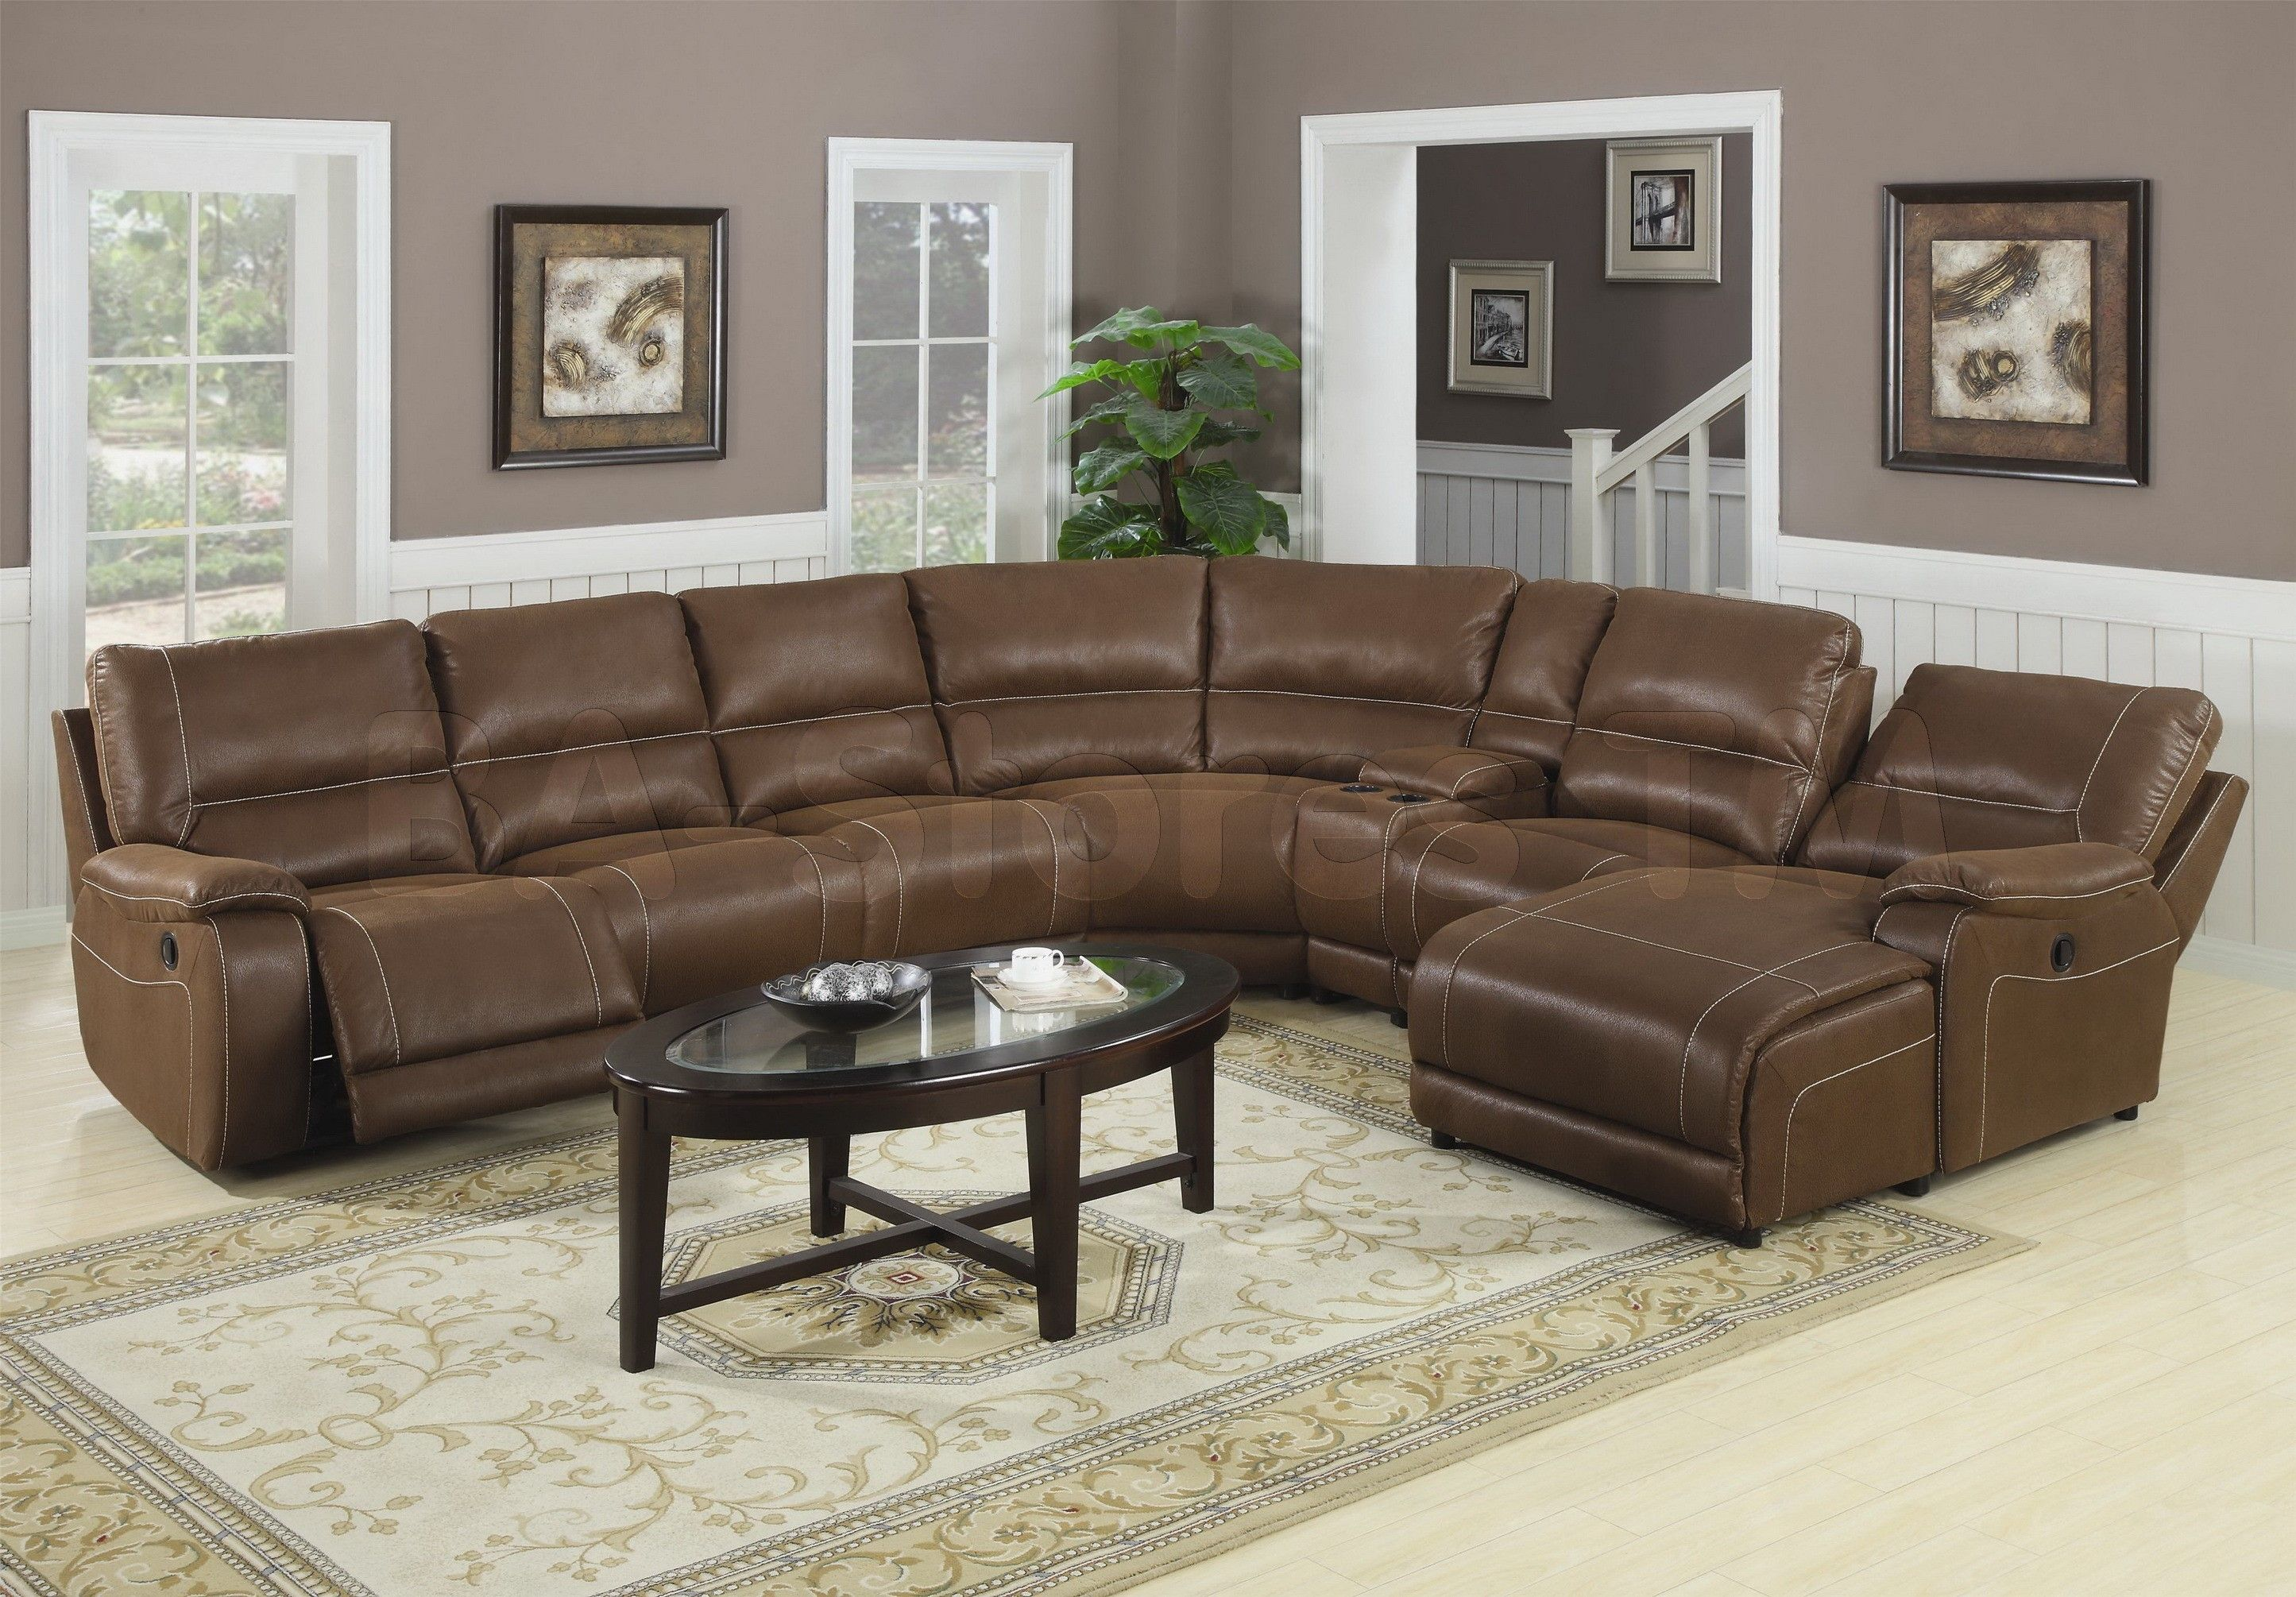 Brown Leather Couch   Place A Small Piece Of Leather On The Opposite Side  Of The Room. An Ottoman In A Similar Tone Combined With Leather Couch And  Give Th